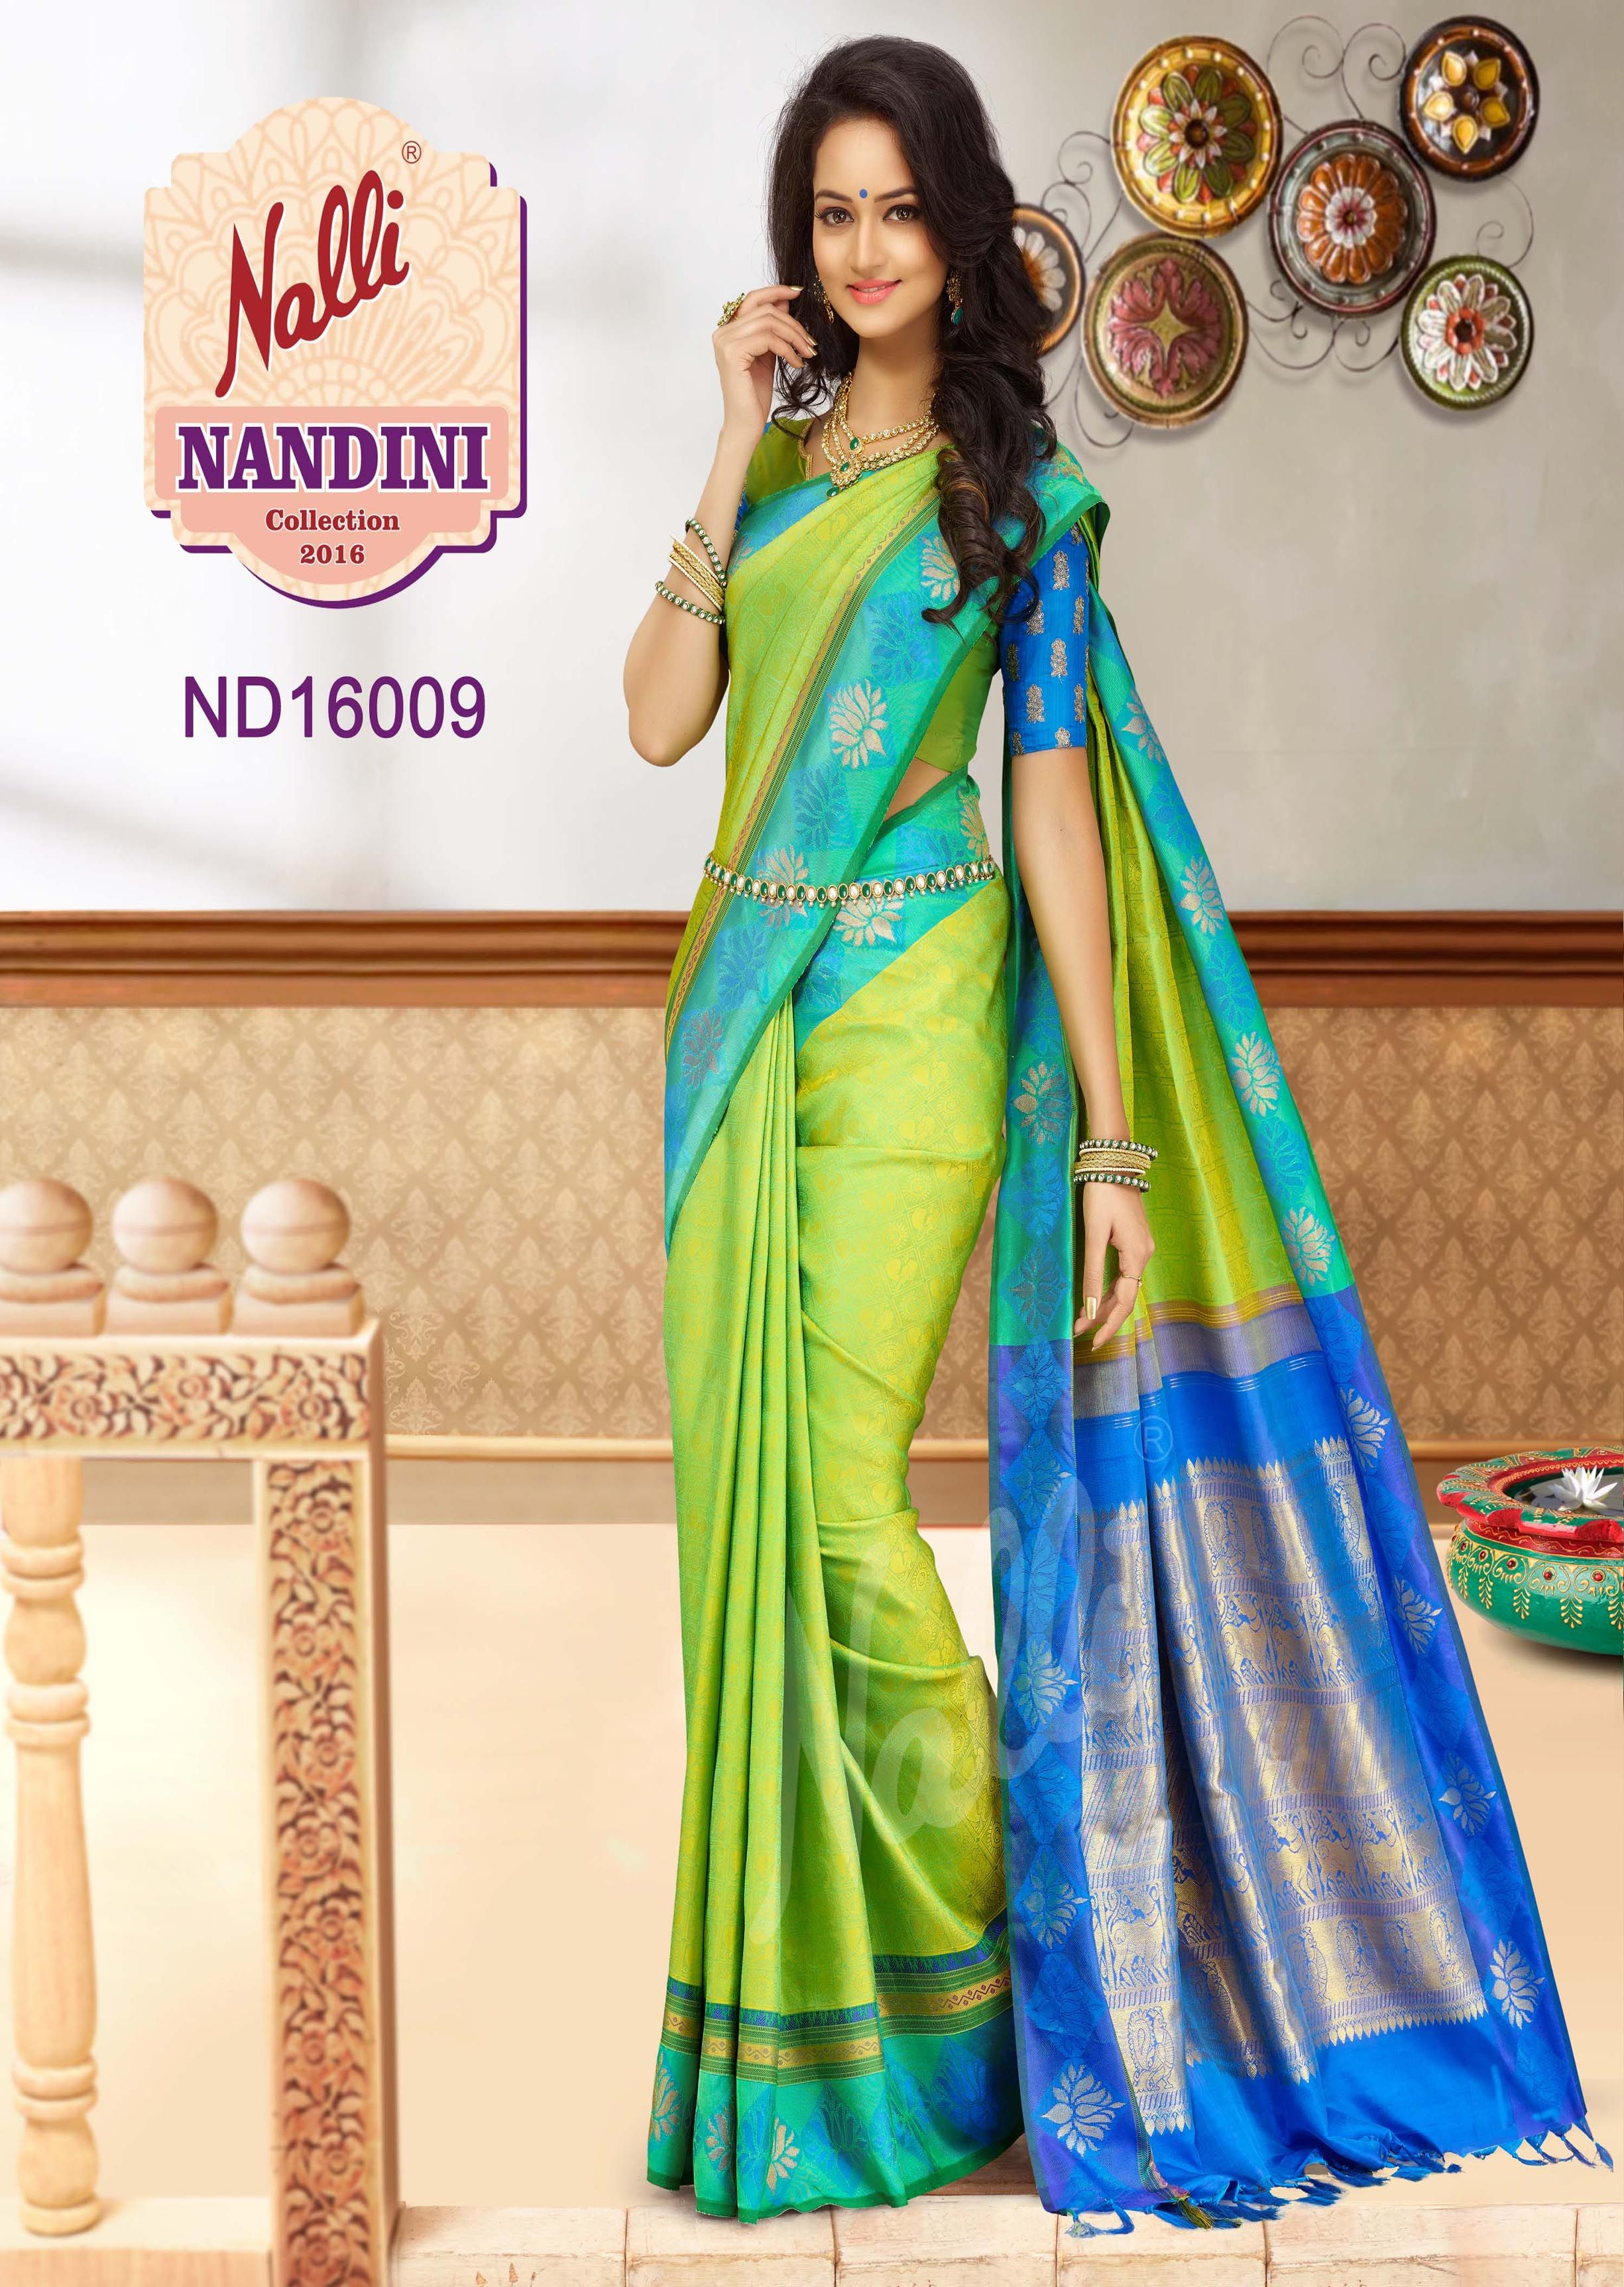 e811e52b1c Catalog All Collections Nalli Silk Sarees, Nalli Silks, Silk Sarees With  Price, Woman